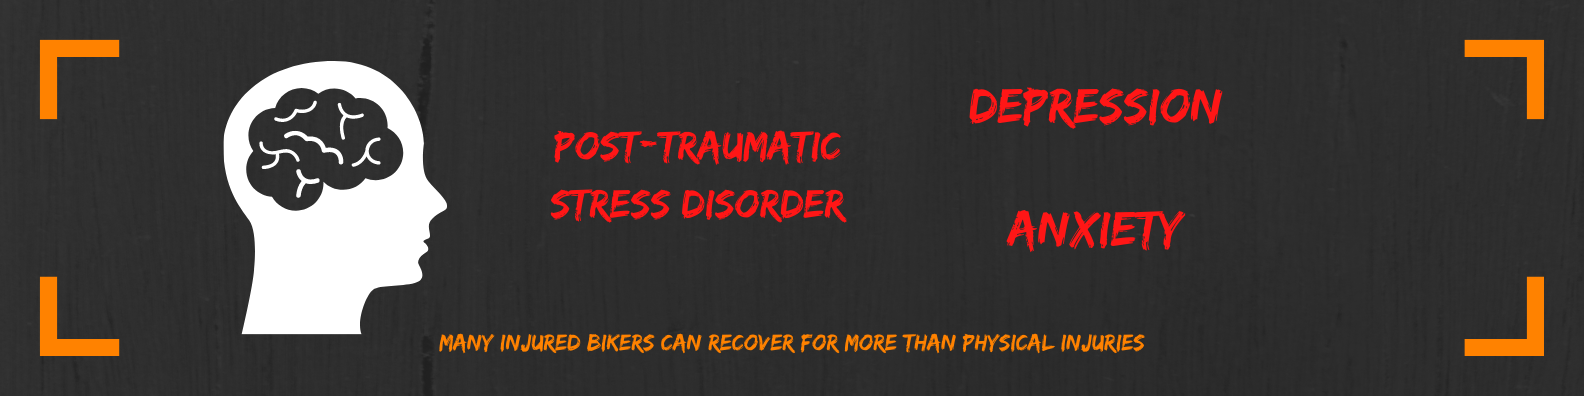 Decorative image about post-traumatic stress, depression, and anxiety